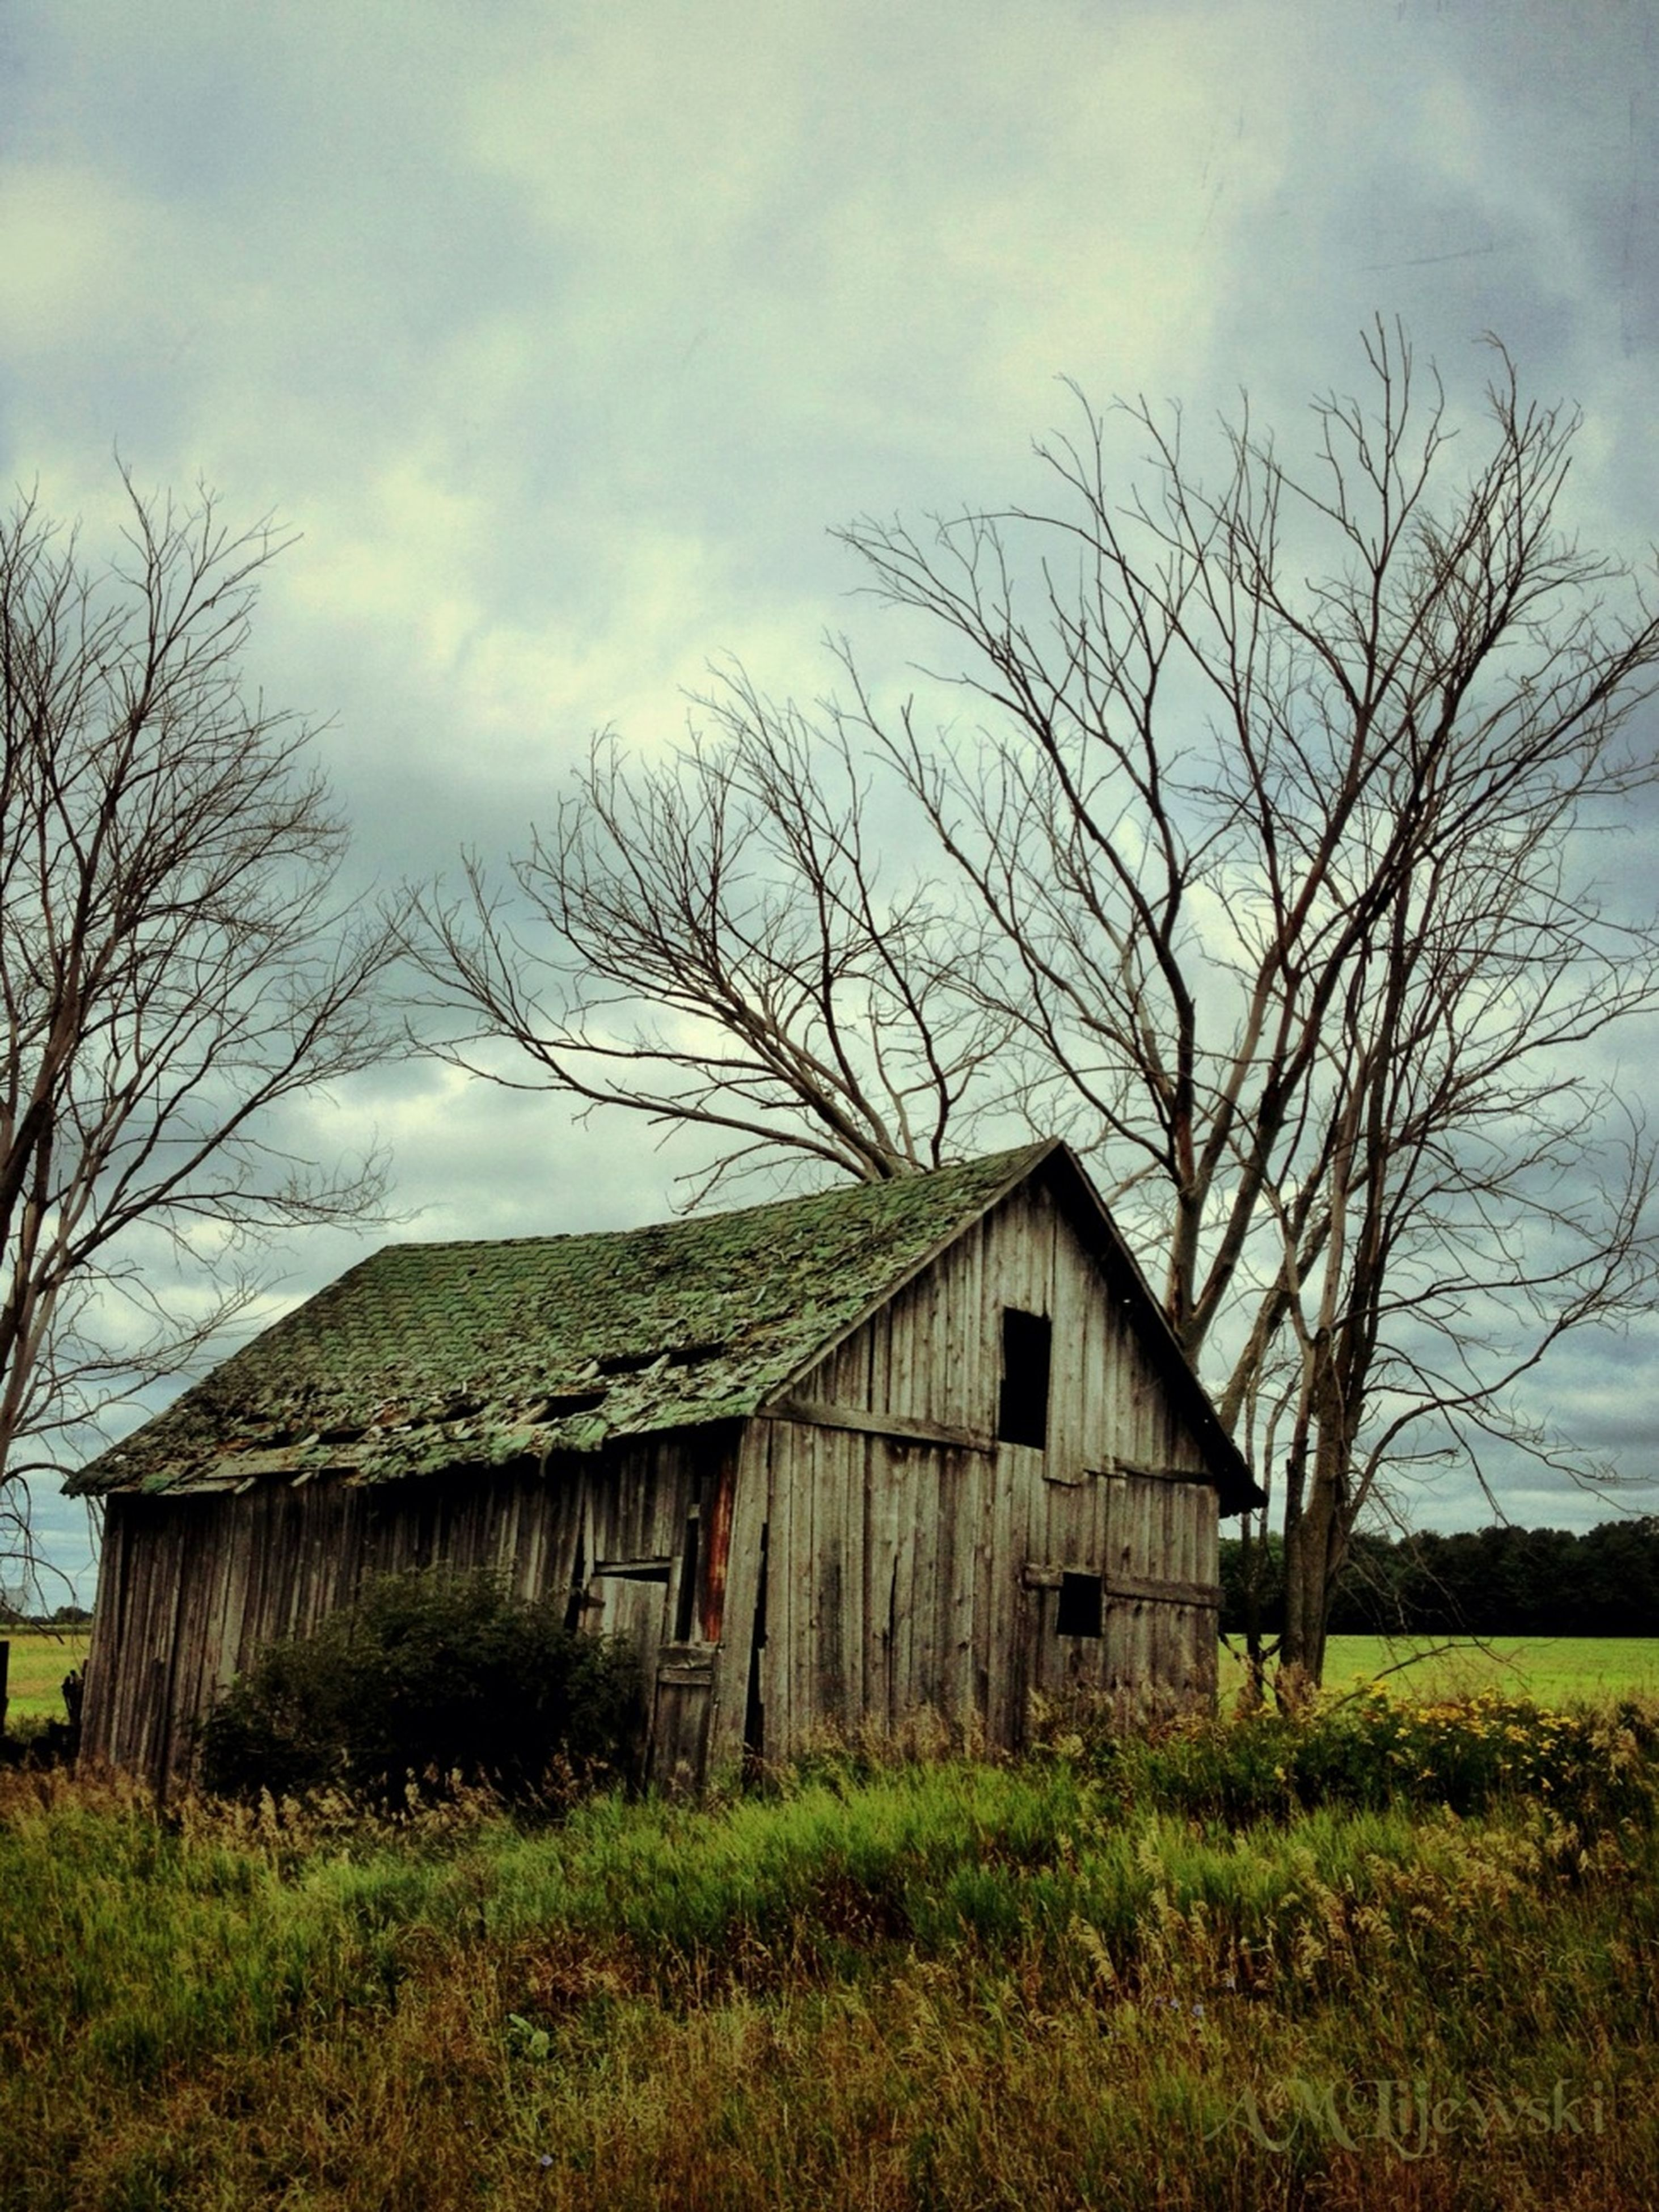 bare tree, architecture, built structure, building exterior, sky, house, tree, field, grass, barn, branch, cloud - sky, rural scene, abandoned, old, landscape, residential structure, cloud, nature, tranquility